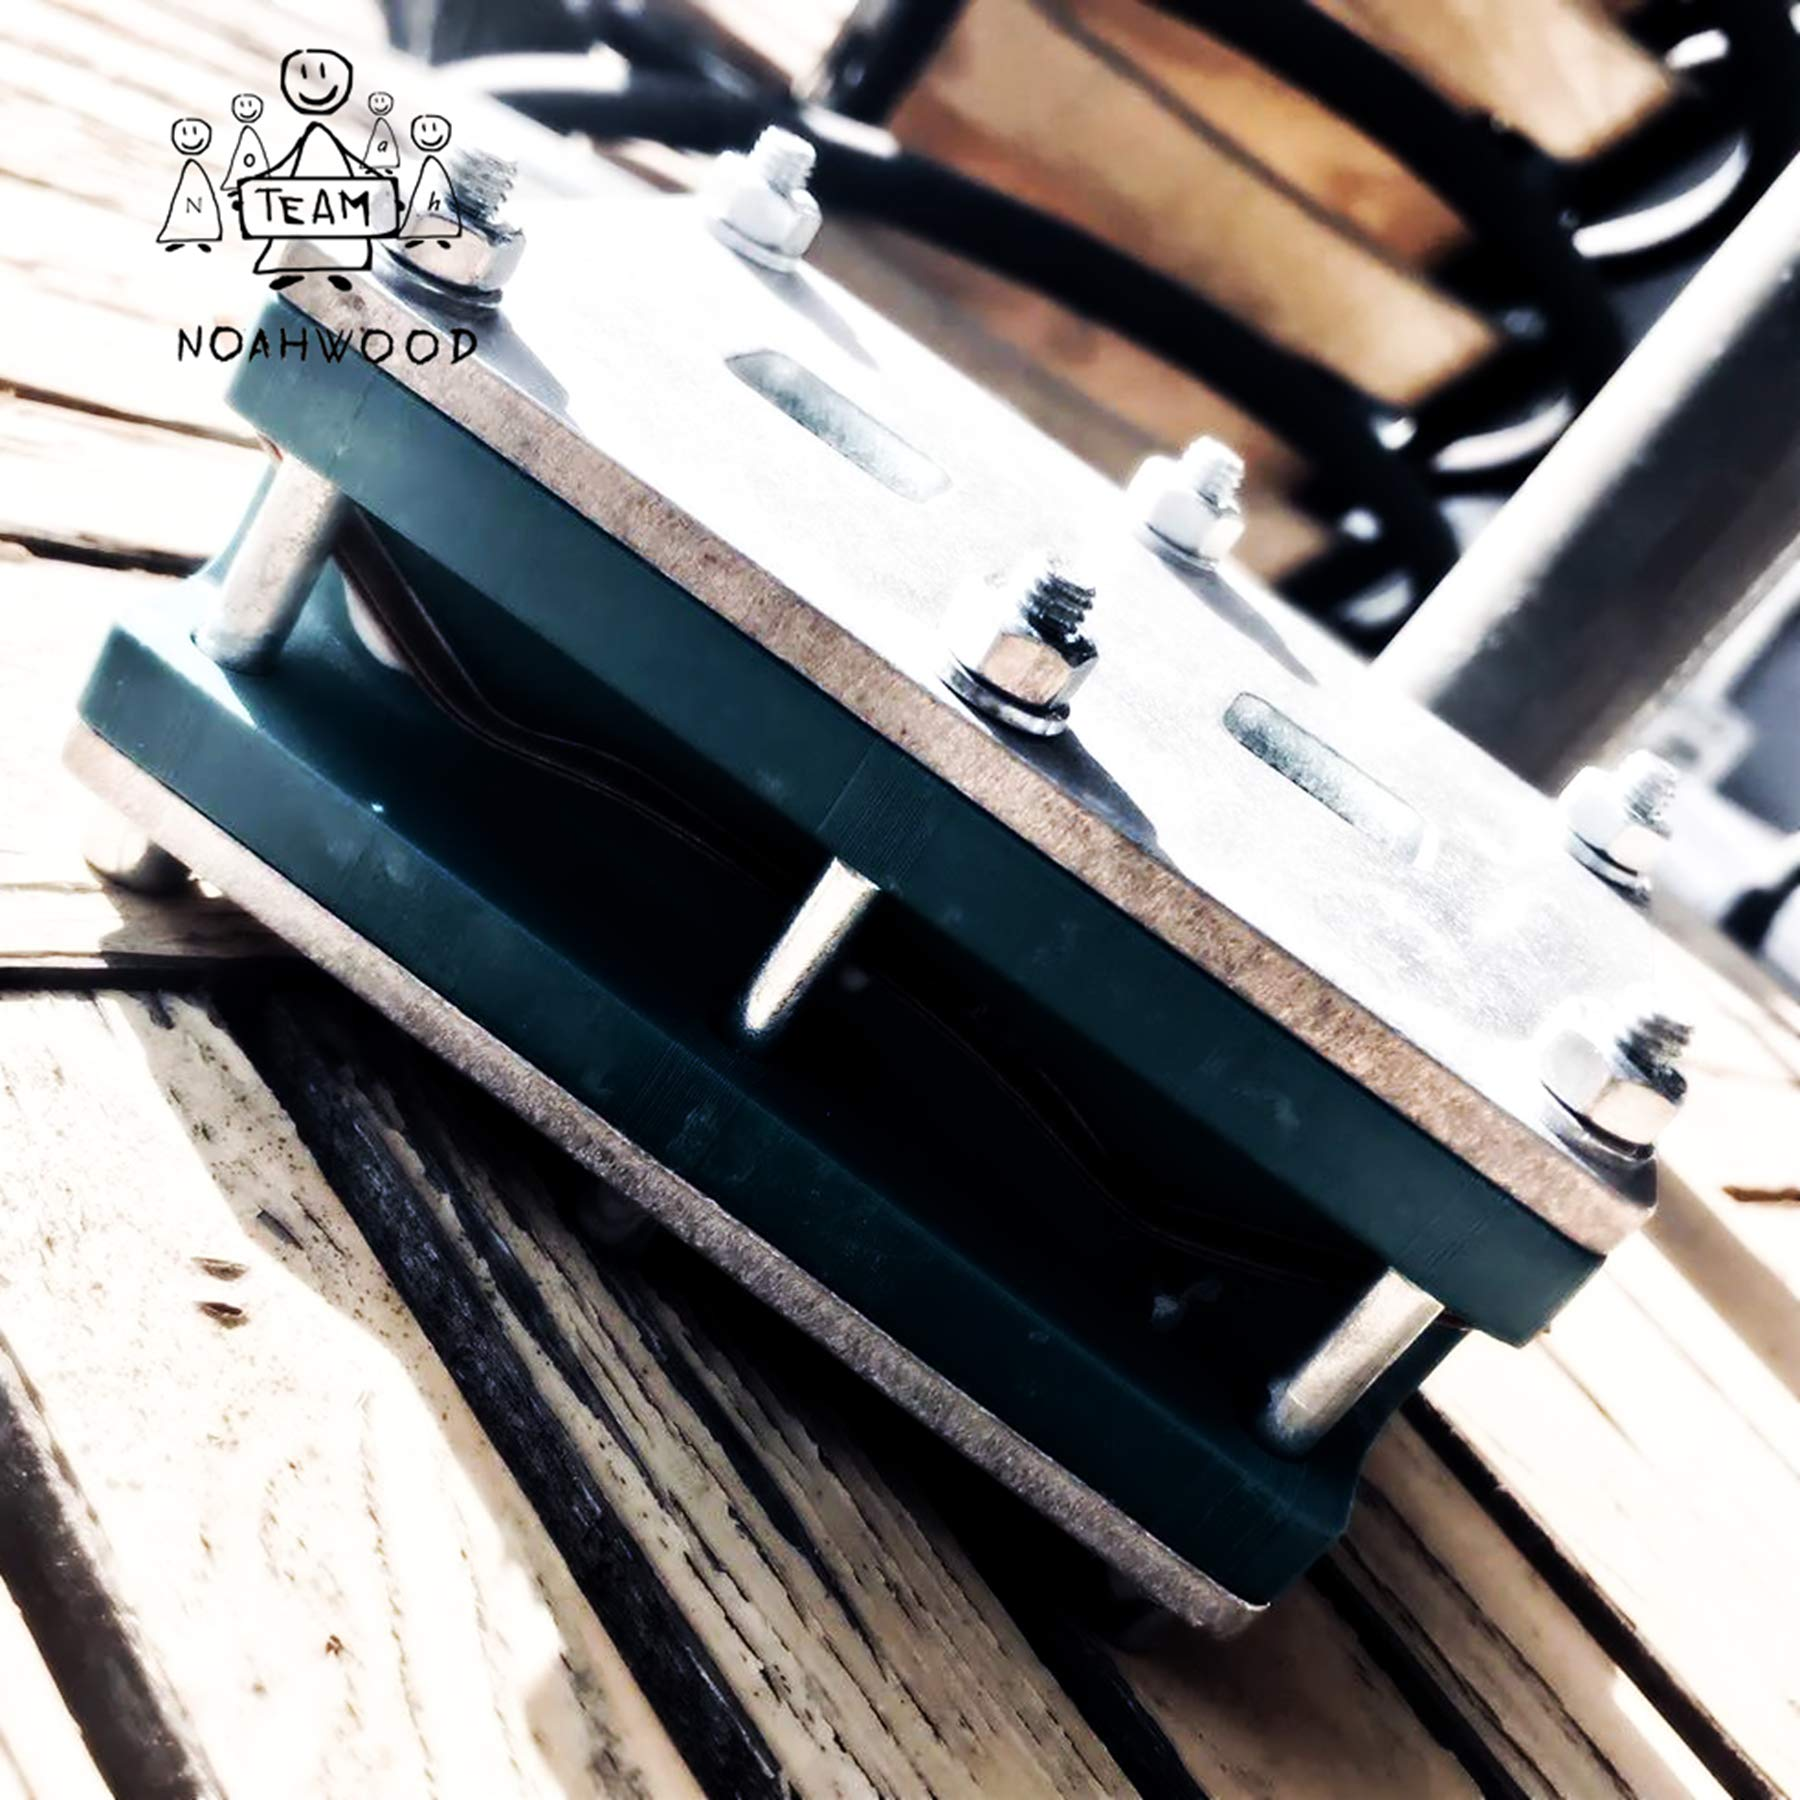 NOAHWOOD Wooden PRO Fingerboards (Deck,Truck,Wheel / a Set) (Happy New Year I) by NOAHWOOD (Image #2)